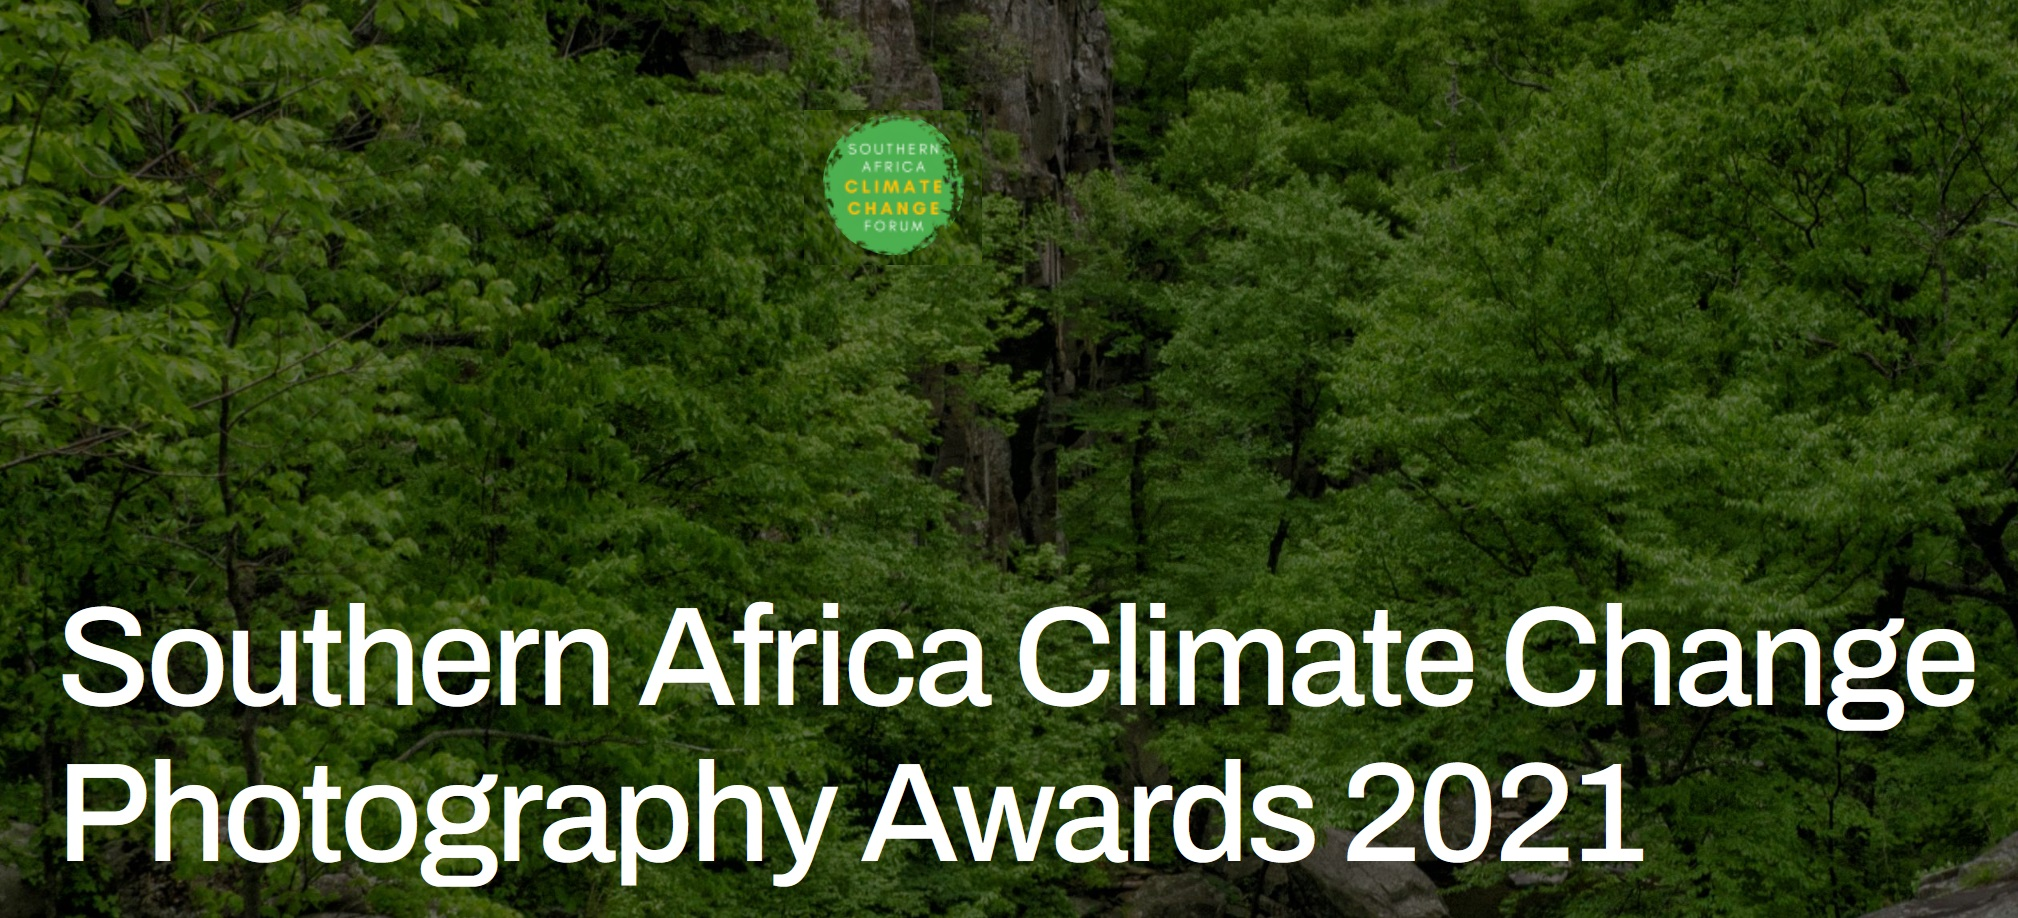 Southern Africa Climate Change Photography Awards 2021 - logo